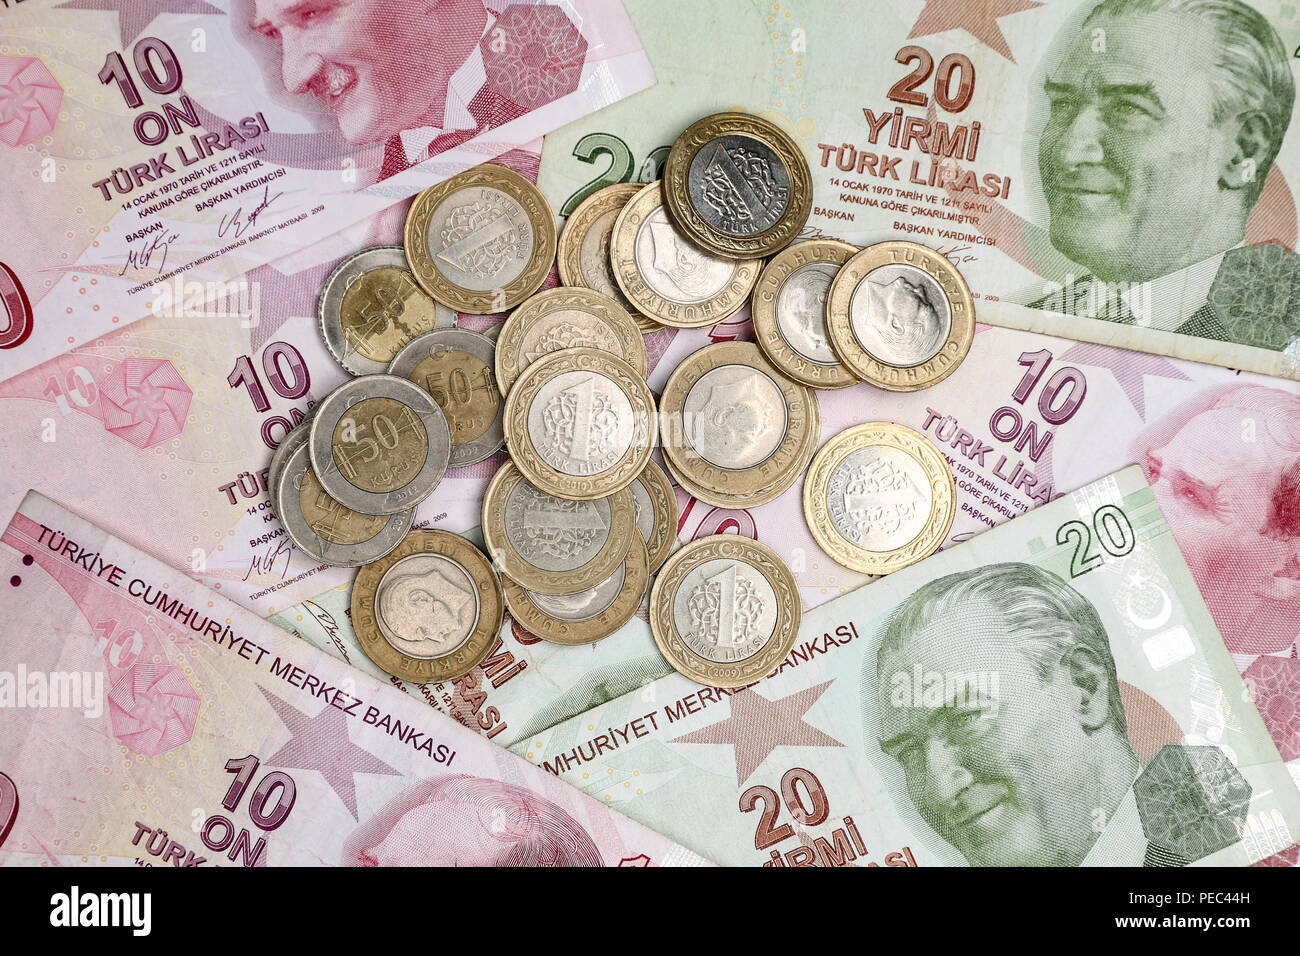 Various Turkish Lira Banknotes and Coins Bunch Stock Photo